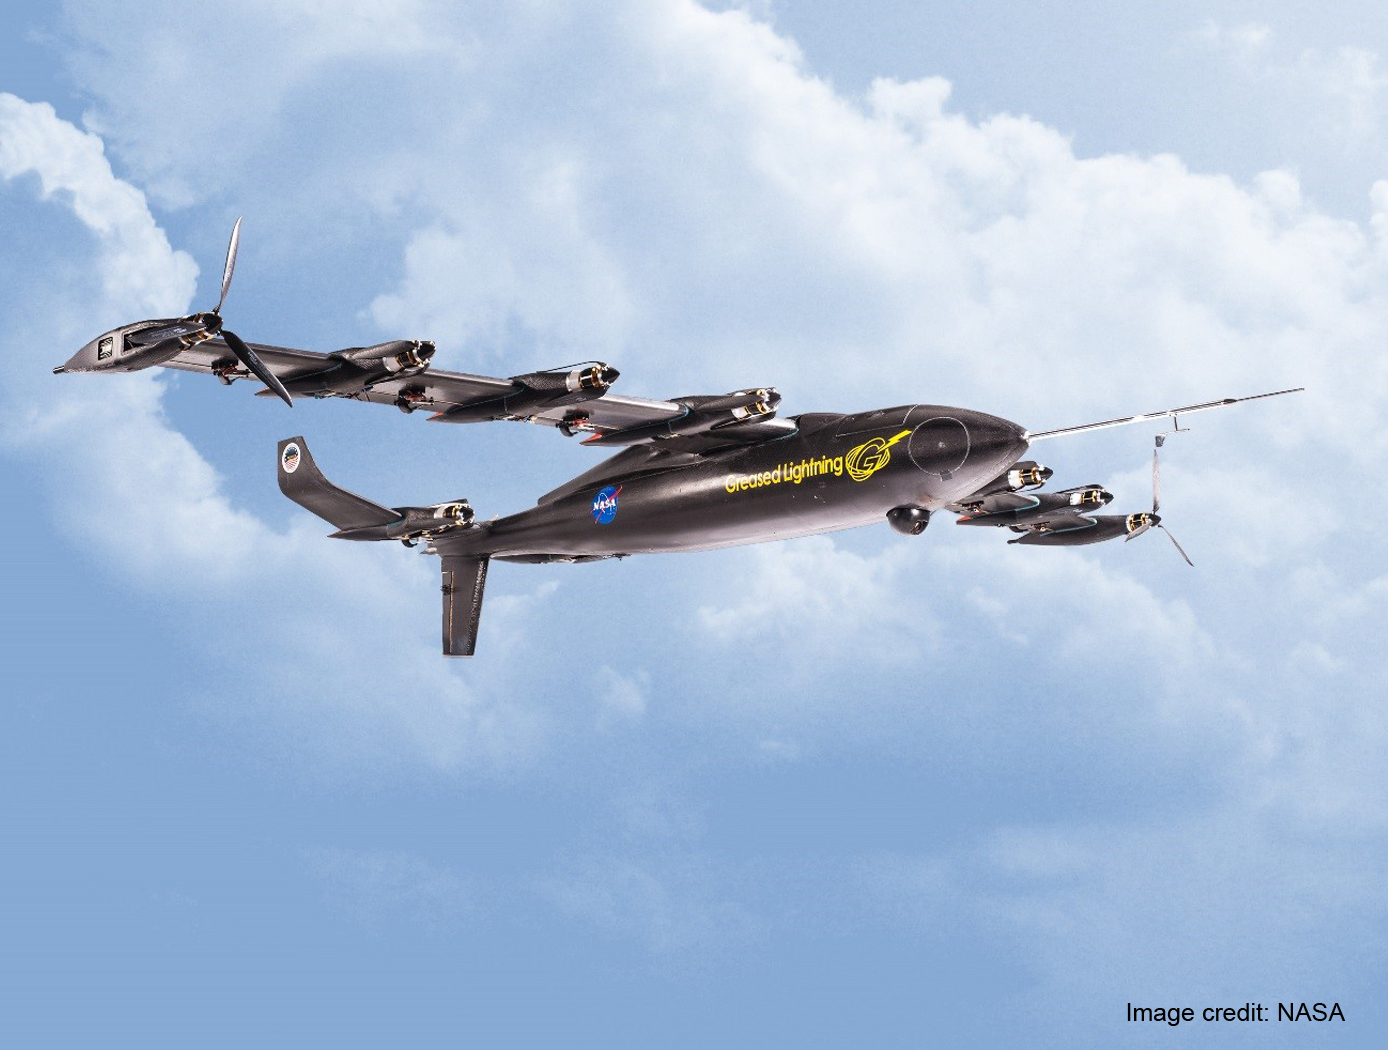 VTOL UAV With the Cruise Efficiency of a Conventional Fixed Wing UAV